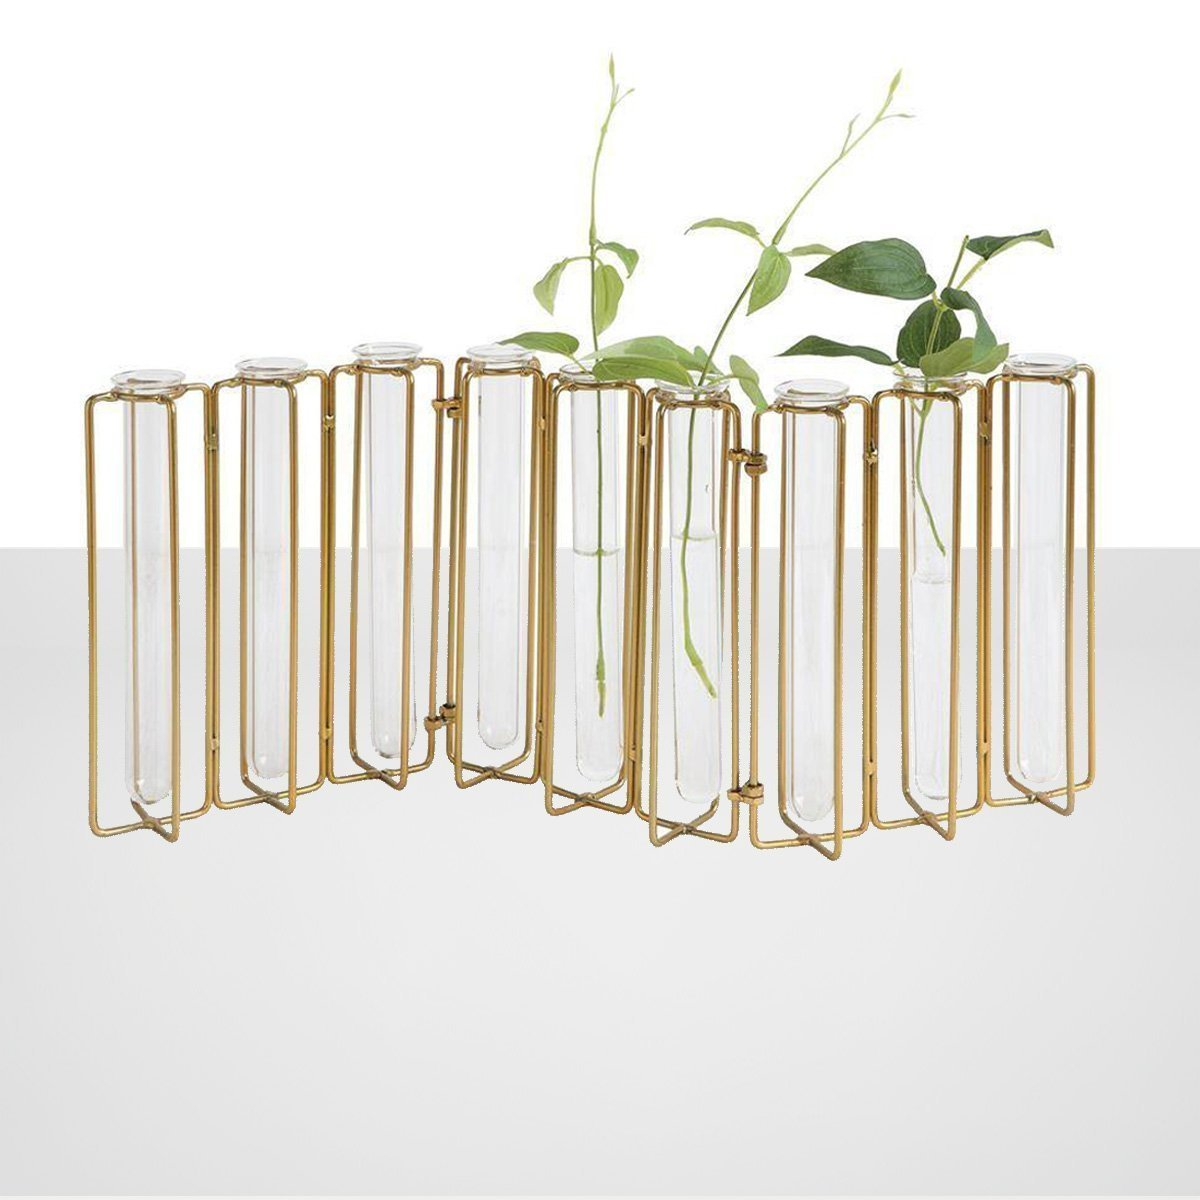 9 Test Tube Vases in a Single Metal Stand, Gold